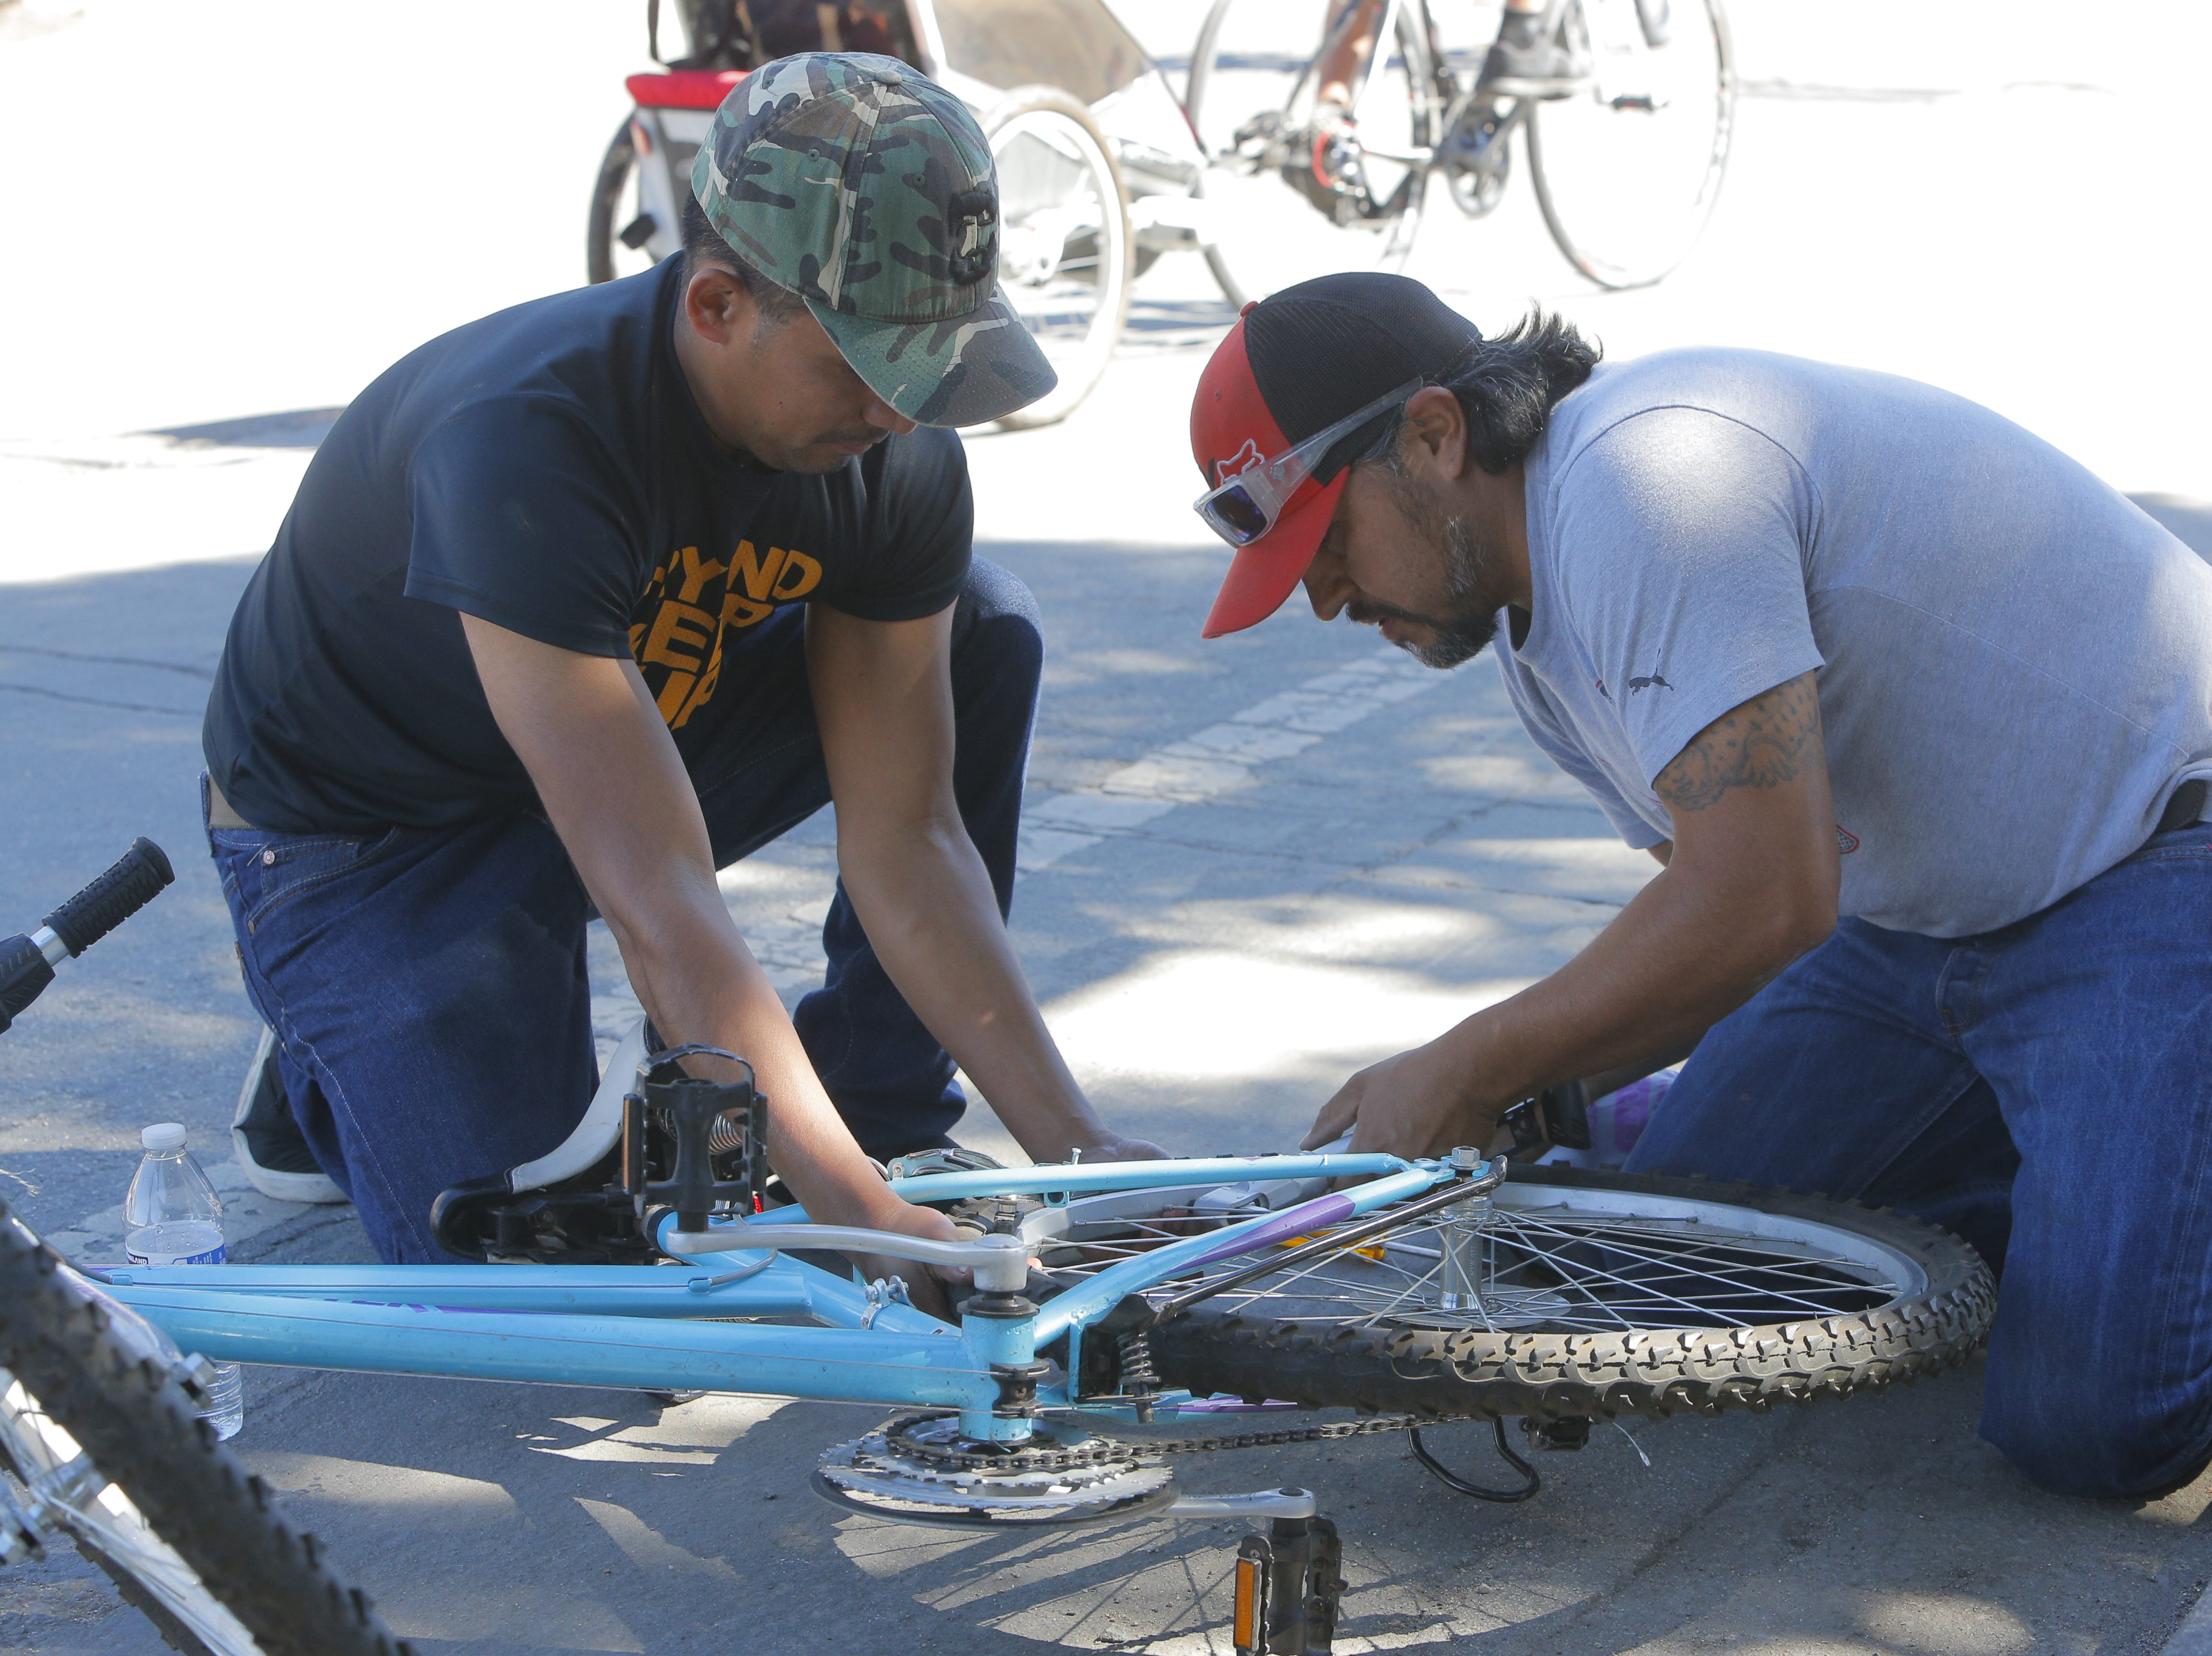 (From left:) Manuel Cruz, 29, an Ricardo Perez, 41, fix a bike tire during 2018's Ciclovia Salinas on E. Alisal Street Sunday.